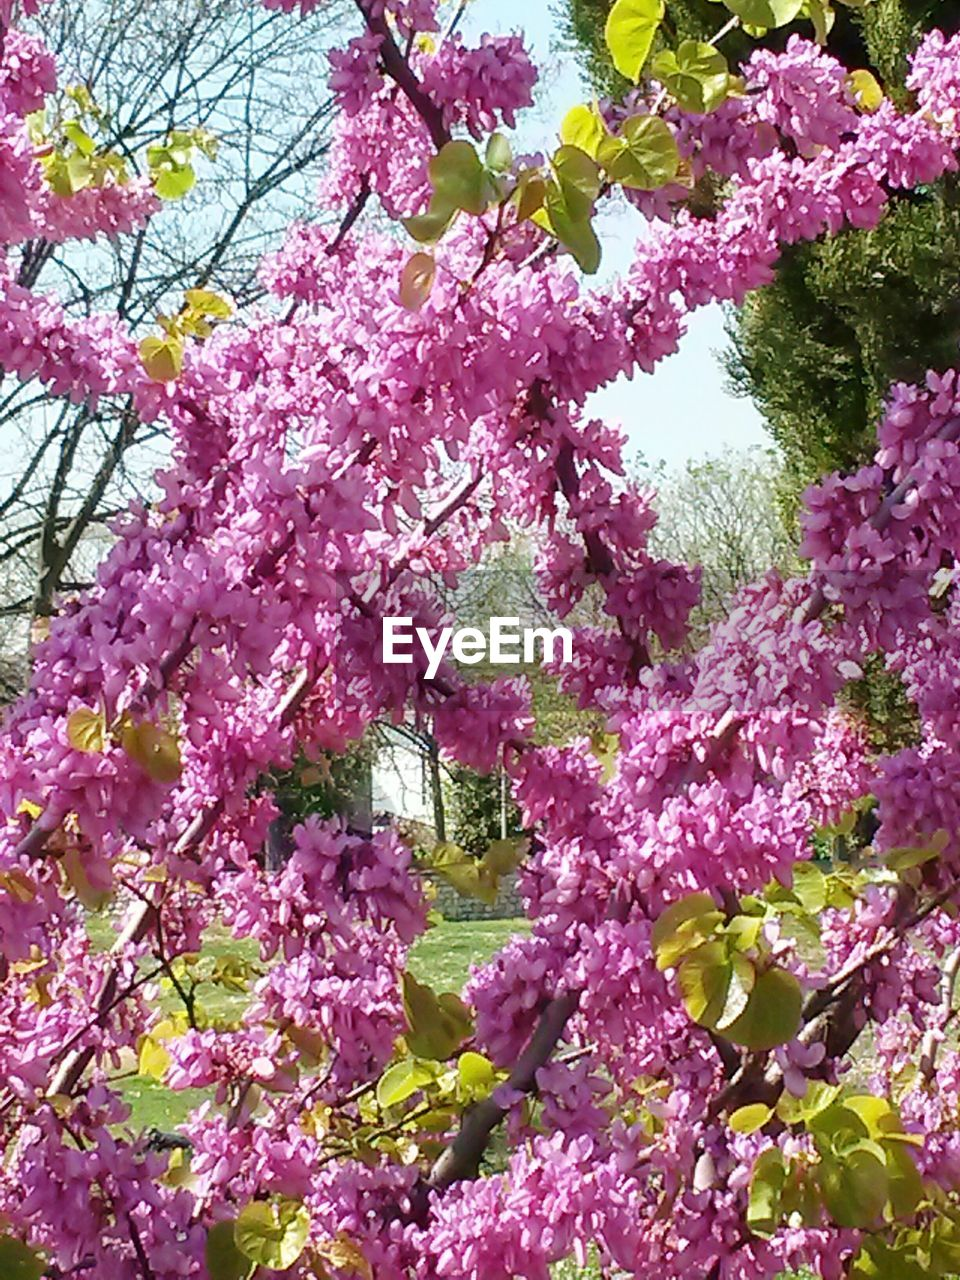 flower, pink color, beauty in nature, growth, blossom, fragility, springtime, freshness, tree, nature, botany, no people, branch, low angle view, petal, rhododendron, day, pink, backgrounds, outdoors, close-up, lilac, flower head